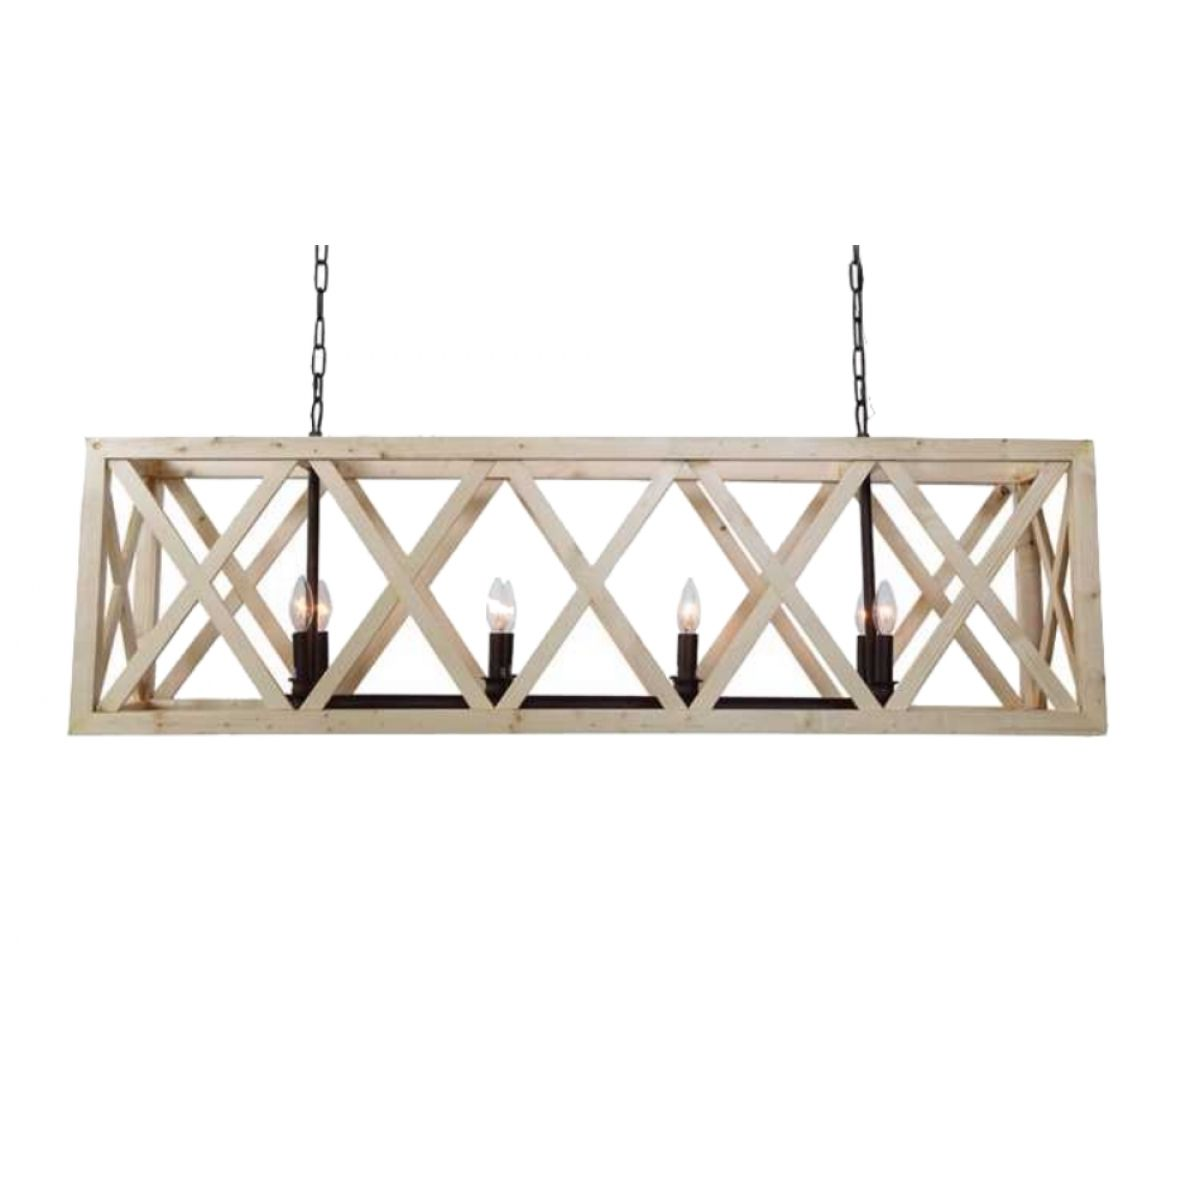 Large criss cross wooden rectangular chandelier american for Rectangular dining room light